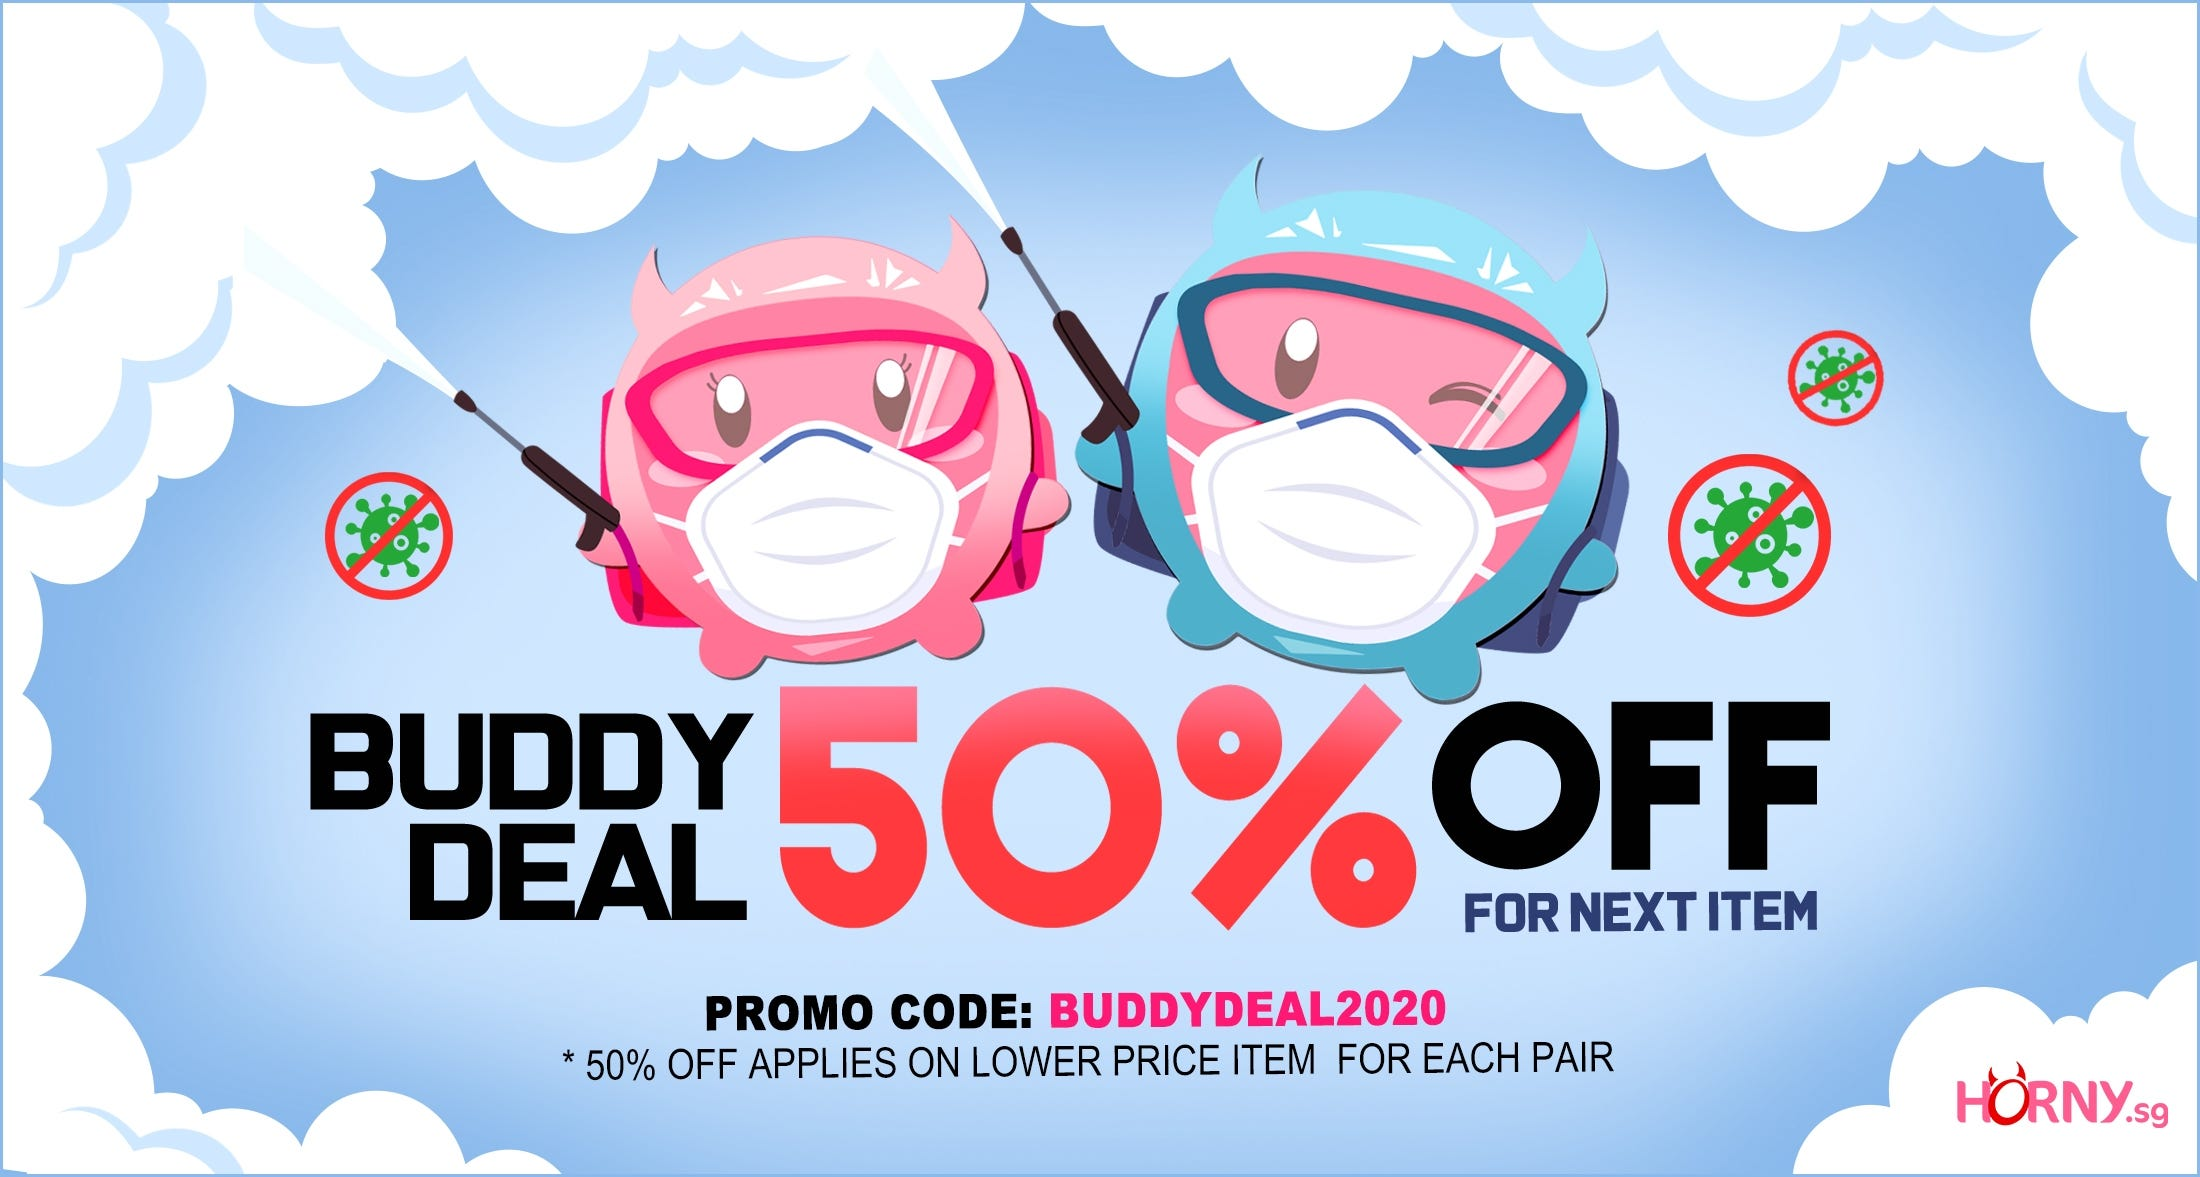 Get the Next item at 50% OFF !